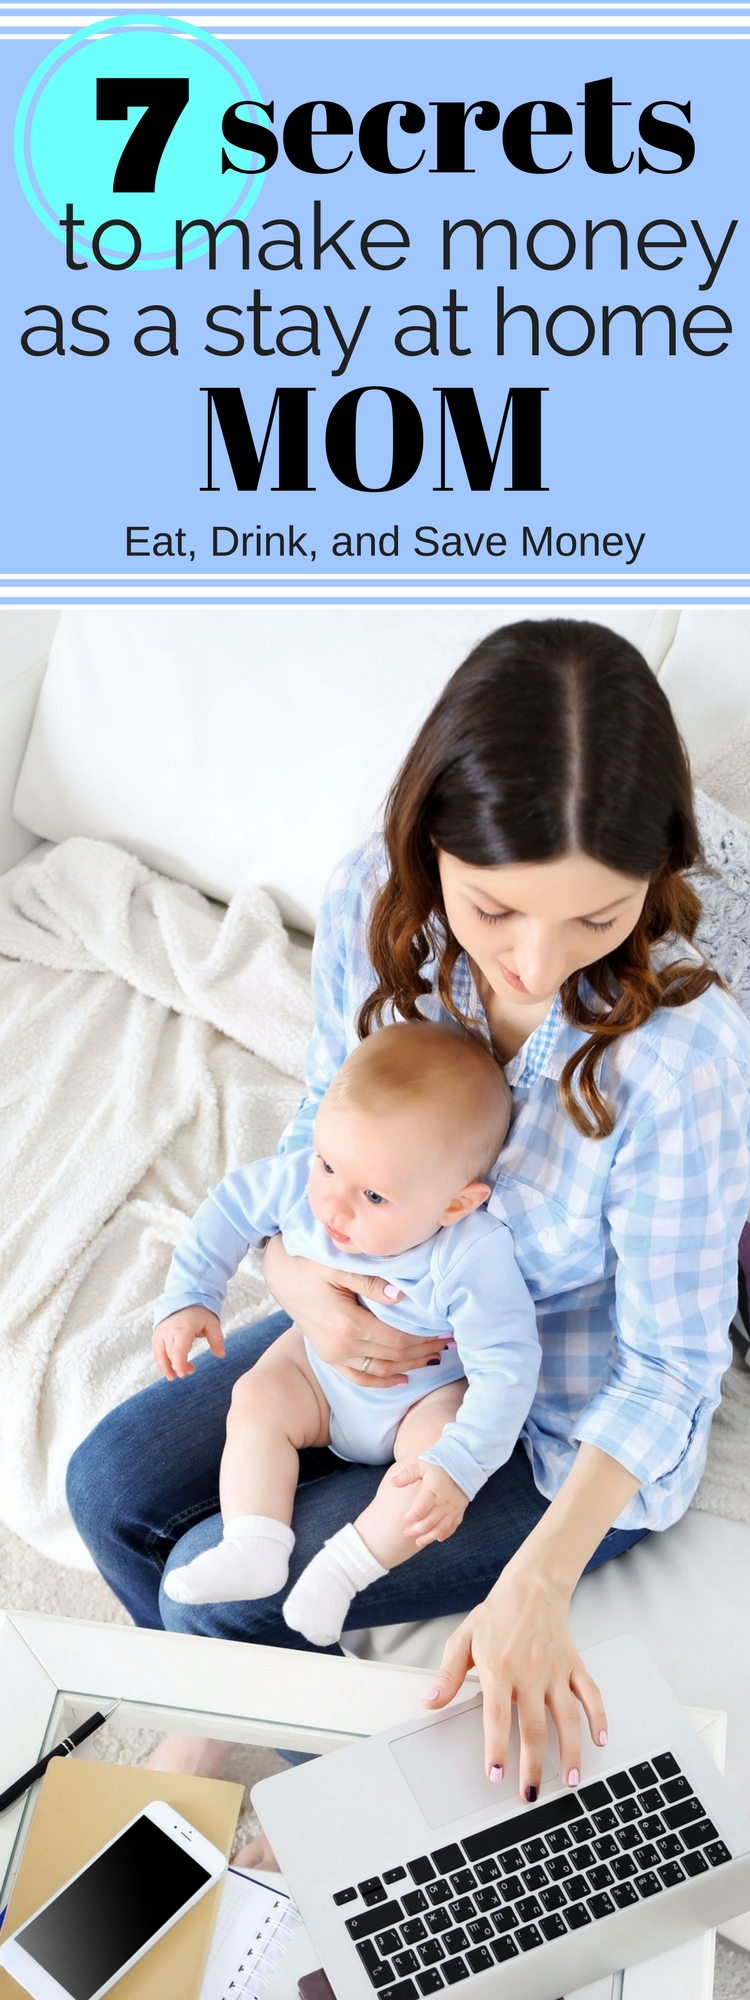 7 Secrets to make money as a stay at home mom